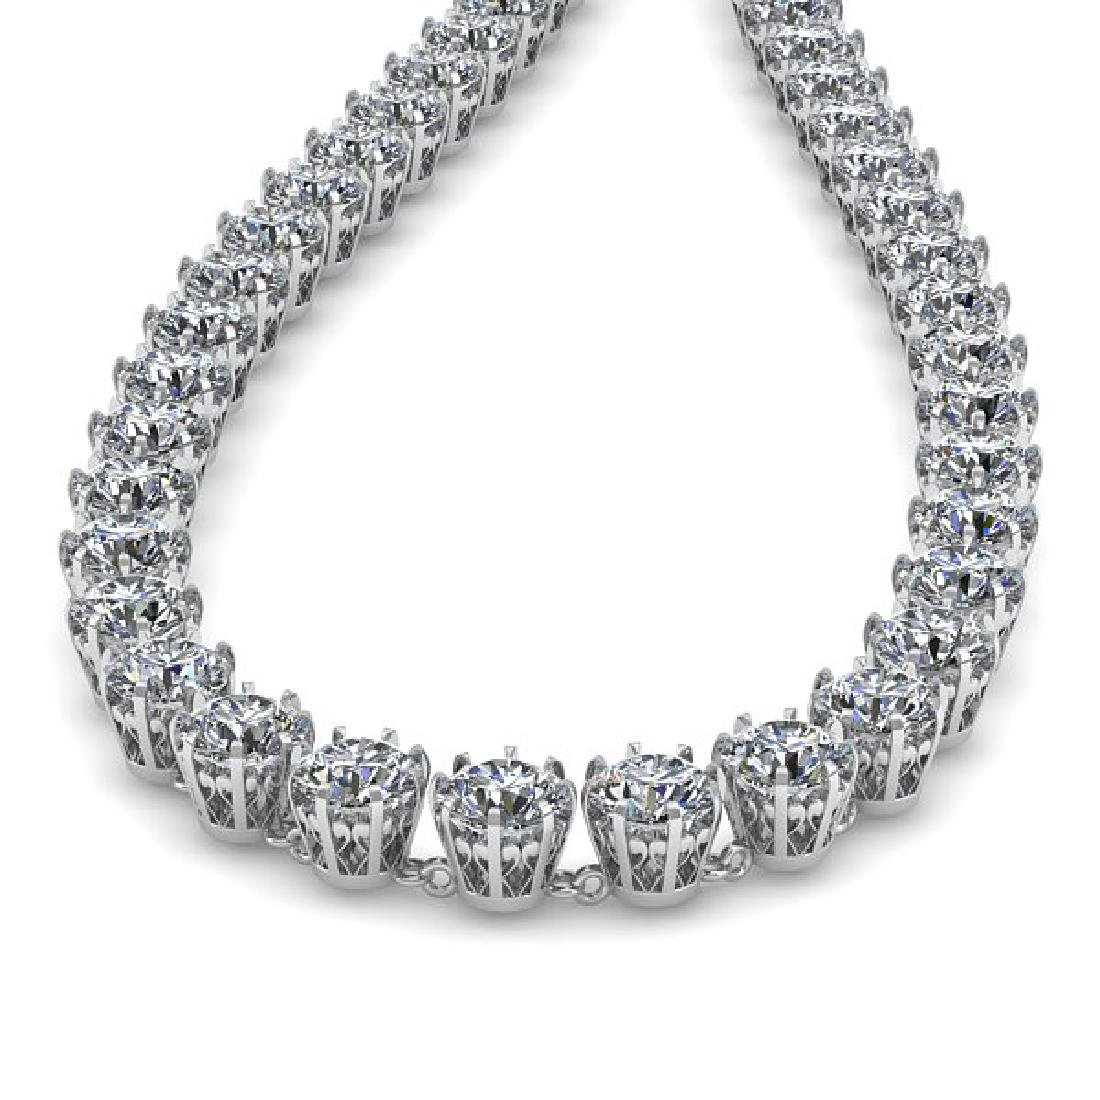 30 CTW SI Certified Diamond Necklace 18K White Gold - 2